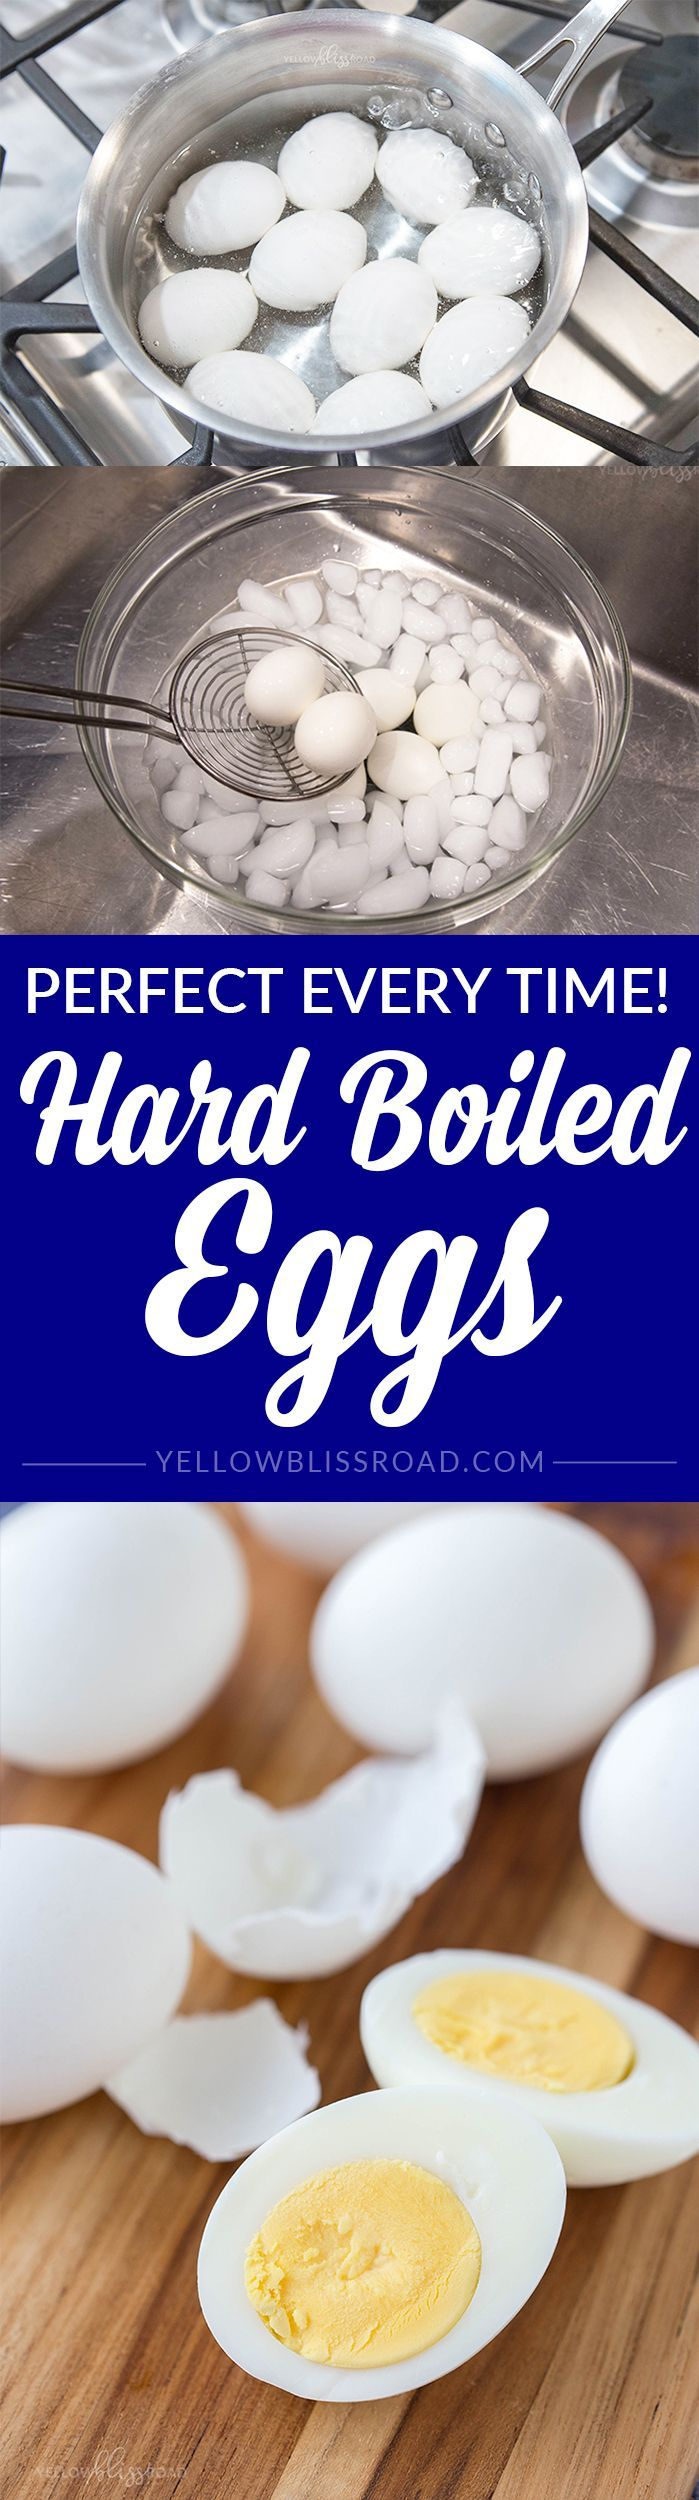 How To Boil An Egg Recipe Eggs Boiled Egg And Hard Boiled